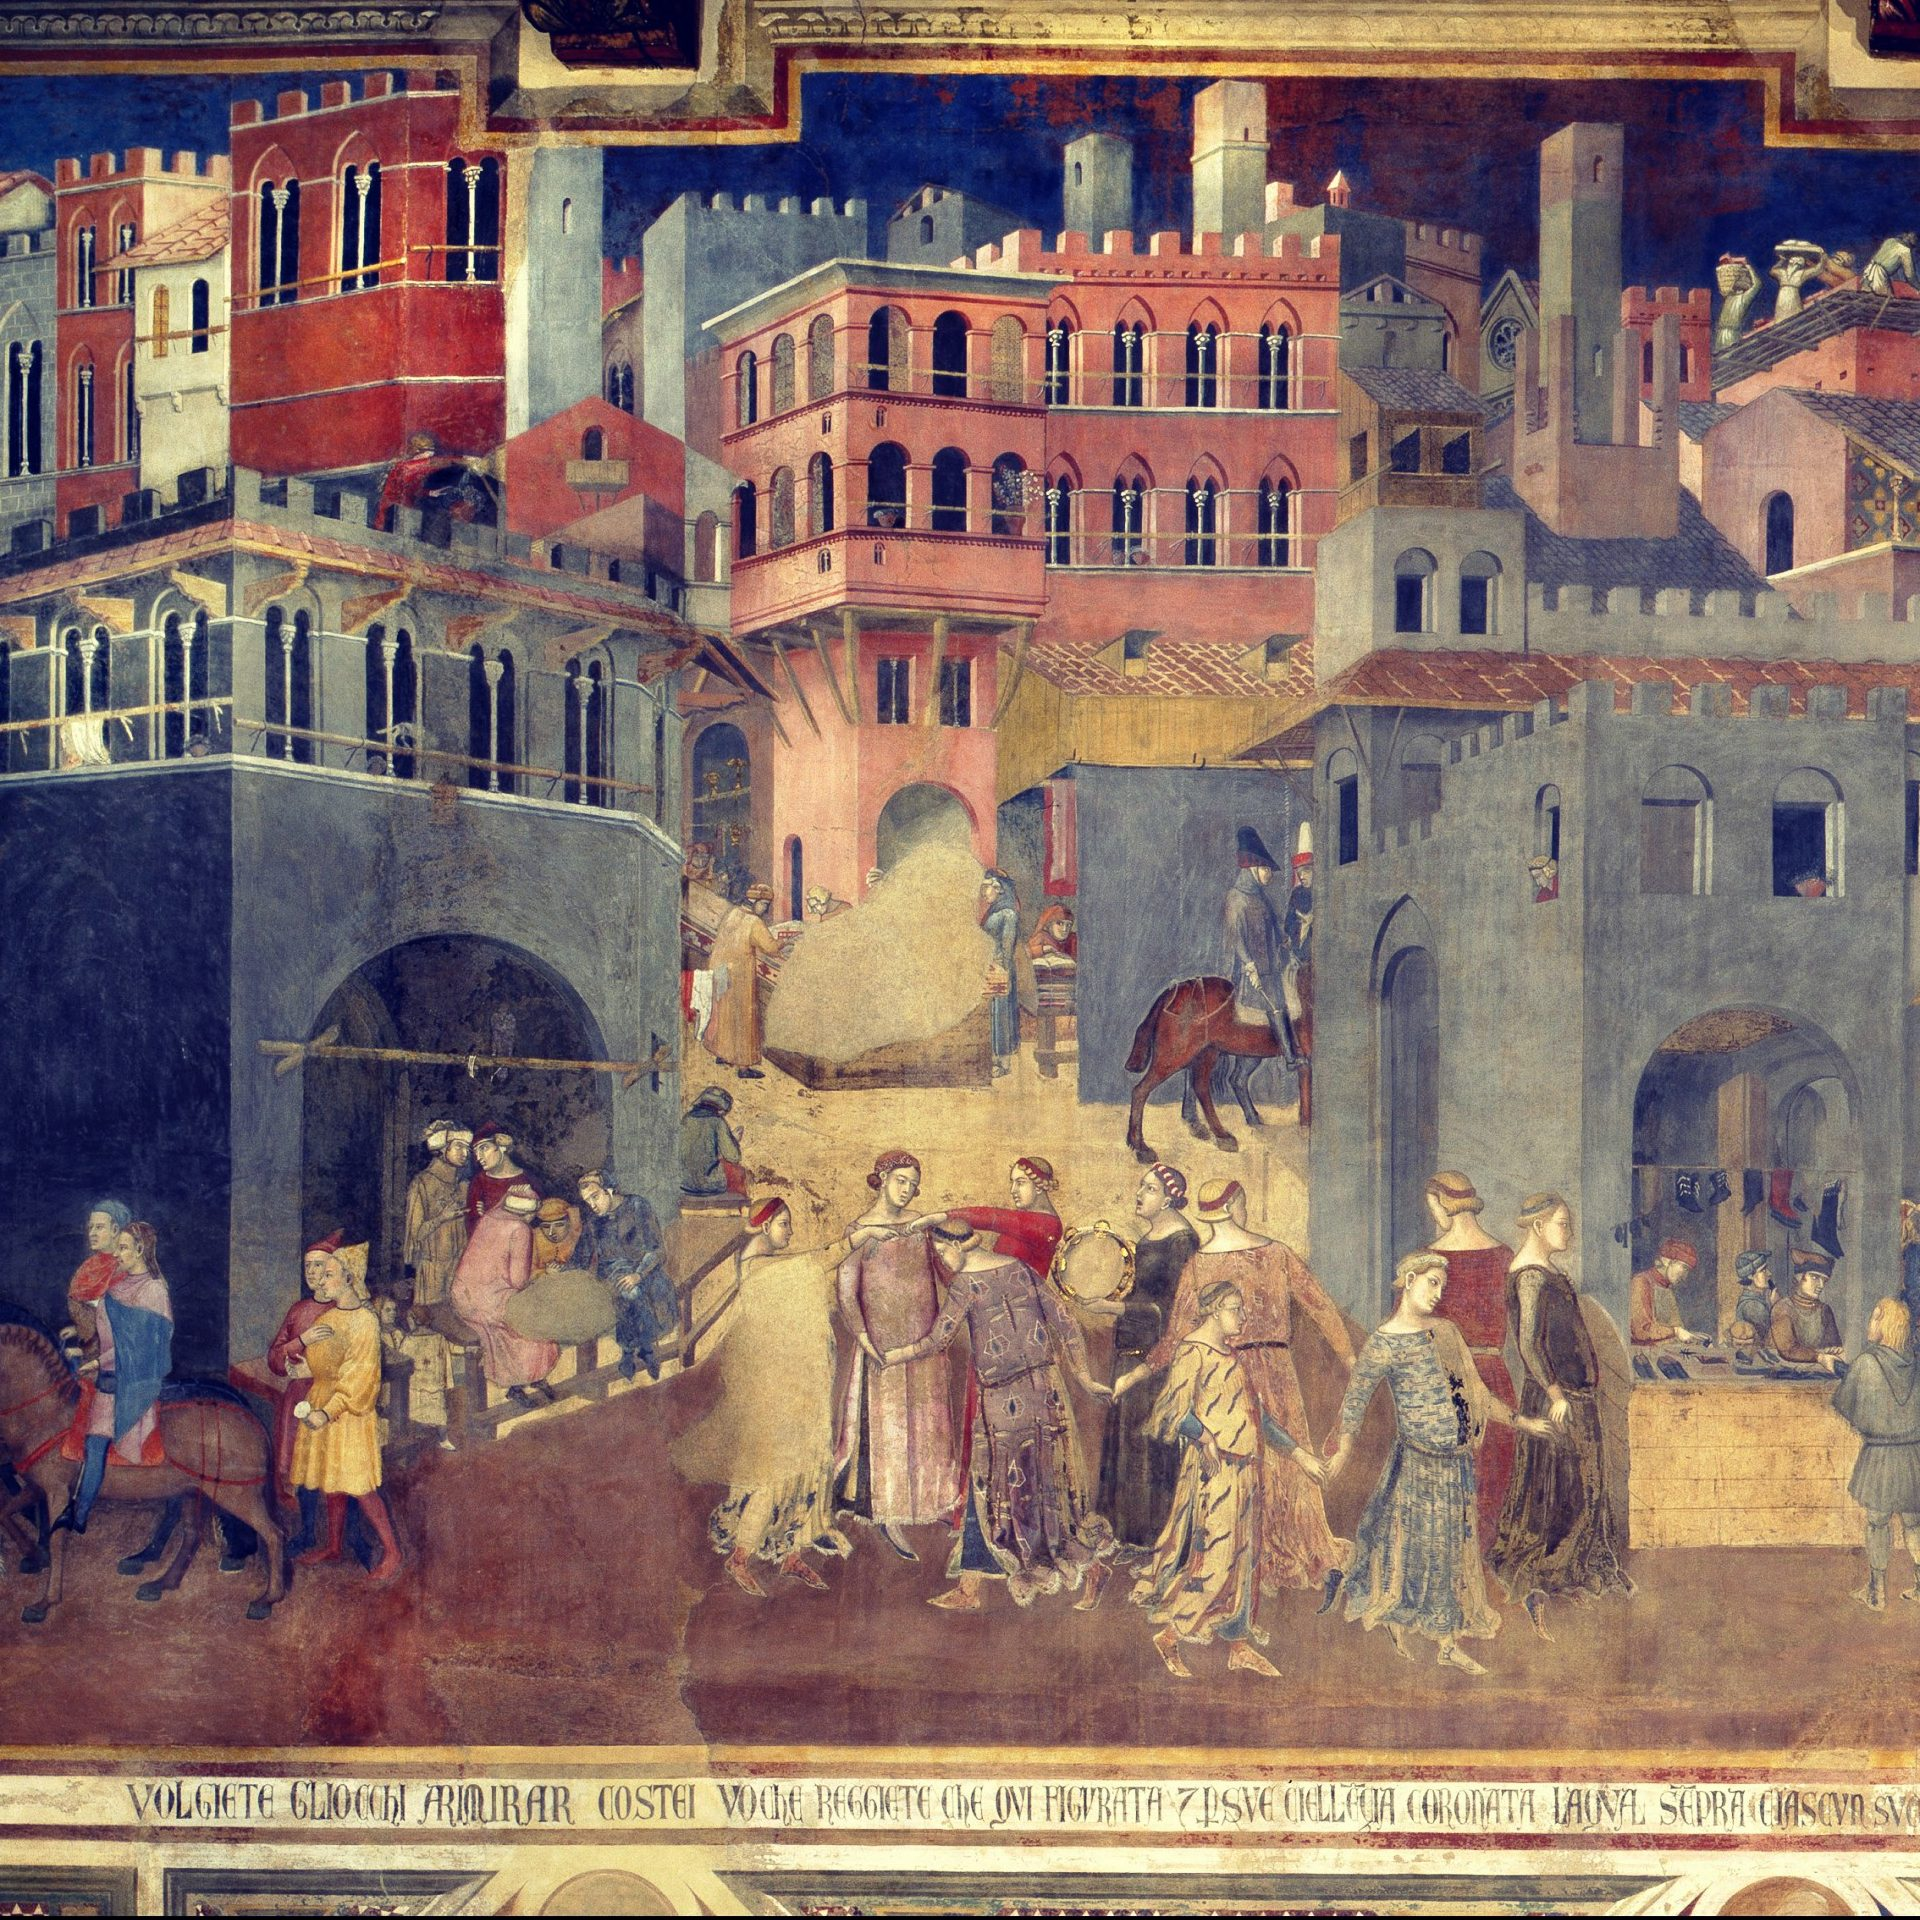 Good and Bad Governments: An Allegory by Ambrogio Lorenzetti (1338-39)